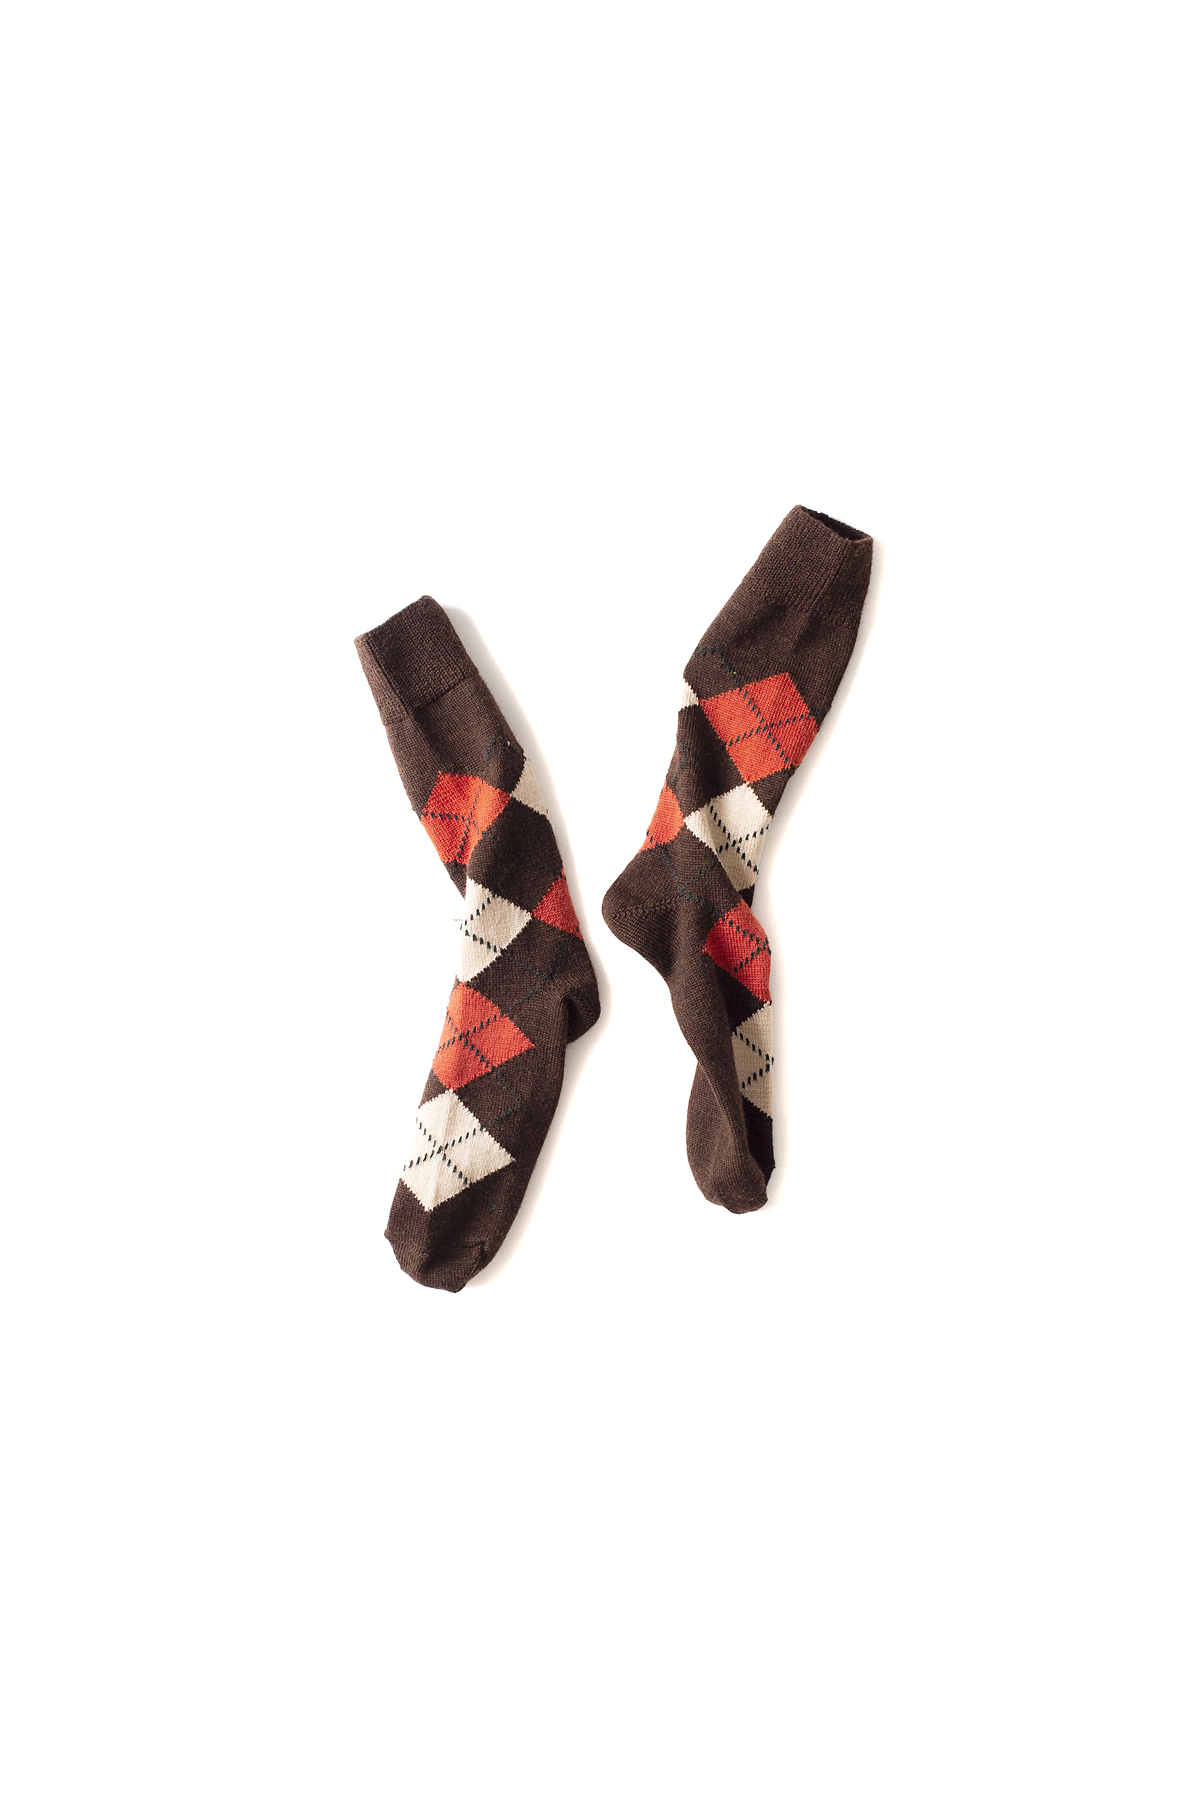 NEEDLES : Jacquard Socks (Brown)